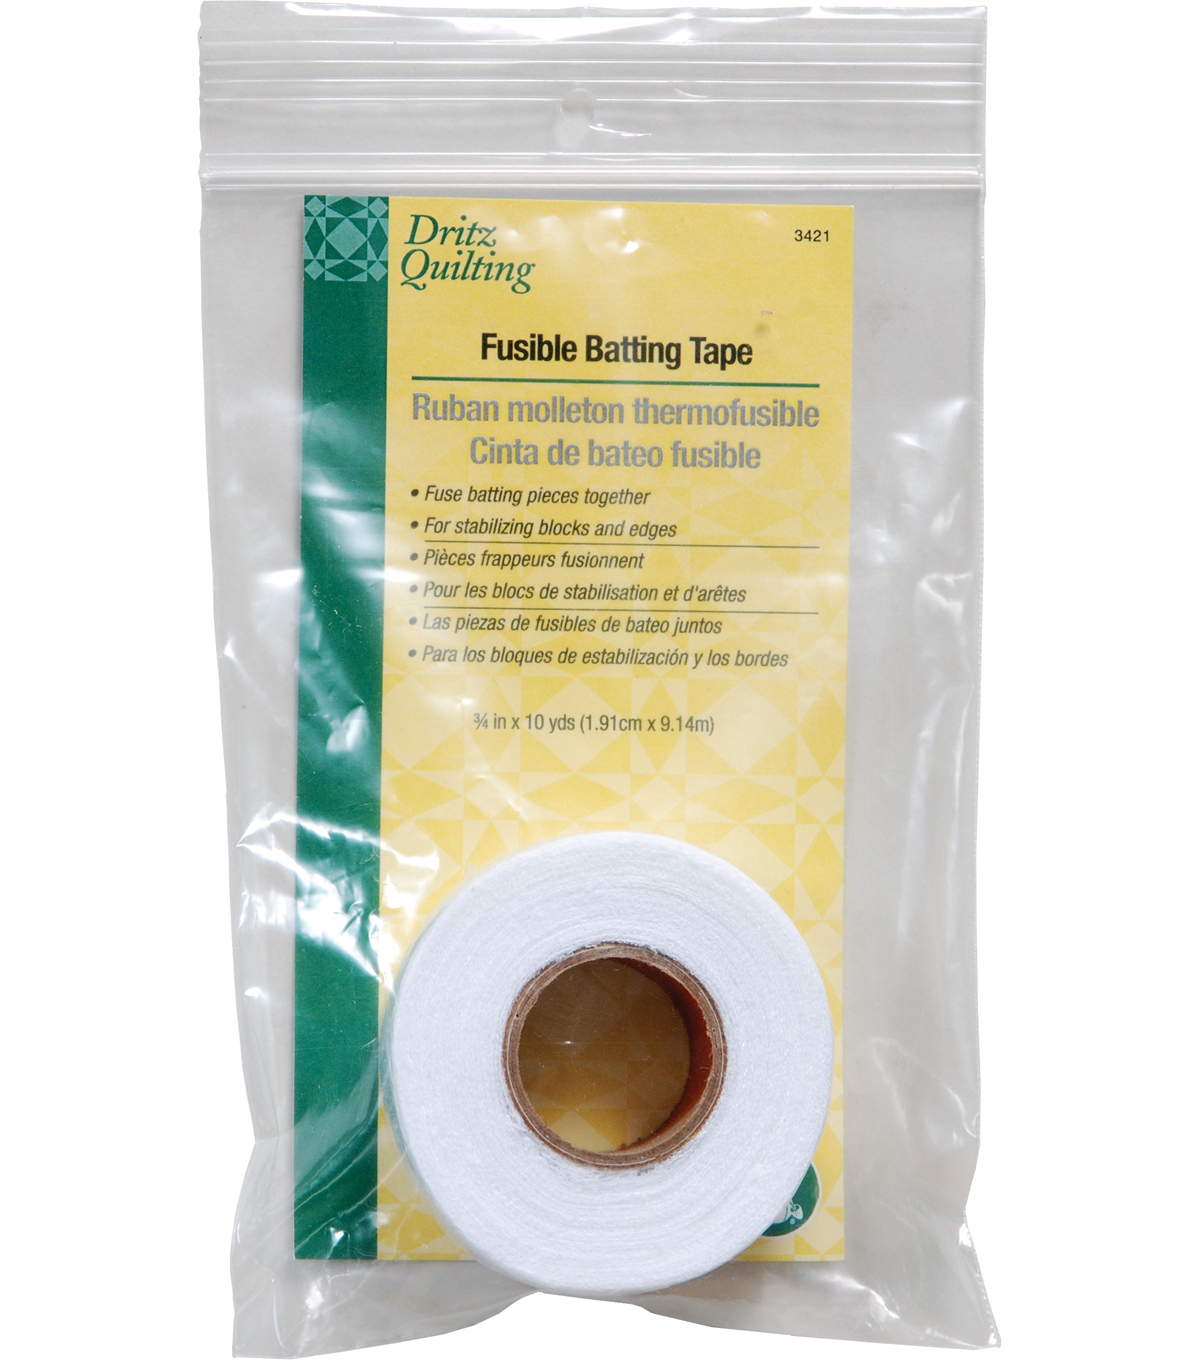 Dritz Quilting Fusible Batting Tape 0.75\u0022x10 Yds